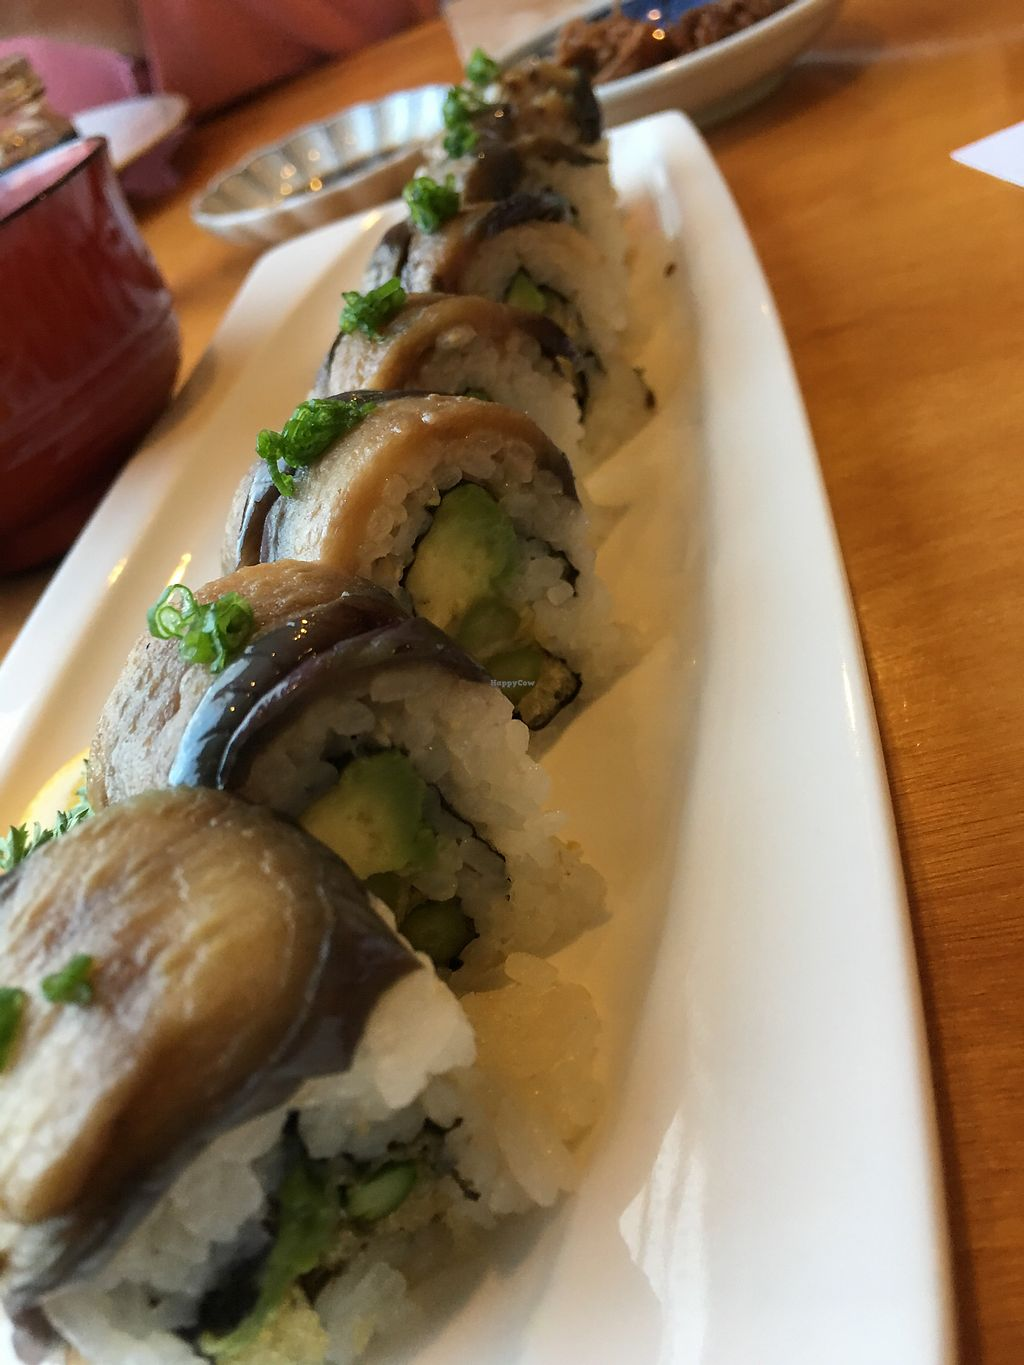 """Photo of Minako Organic-ish  by <a href=""""/members/profile/neil"""">neil</a> <br/>Amazing (eggplant) sushi with special aged tofu <br/> March 17, 2018  - <a href='/contact/abuse/image/114619/372165'>Report</a>"""